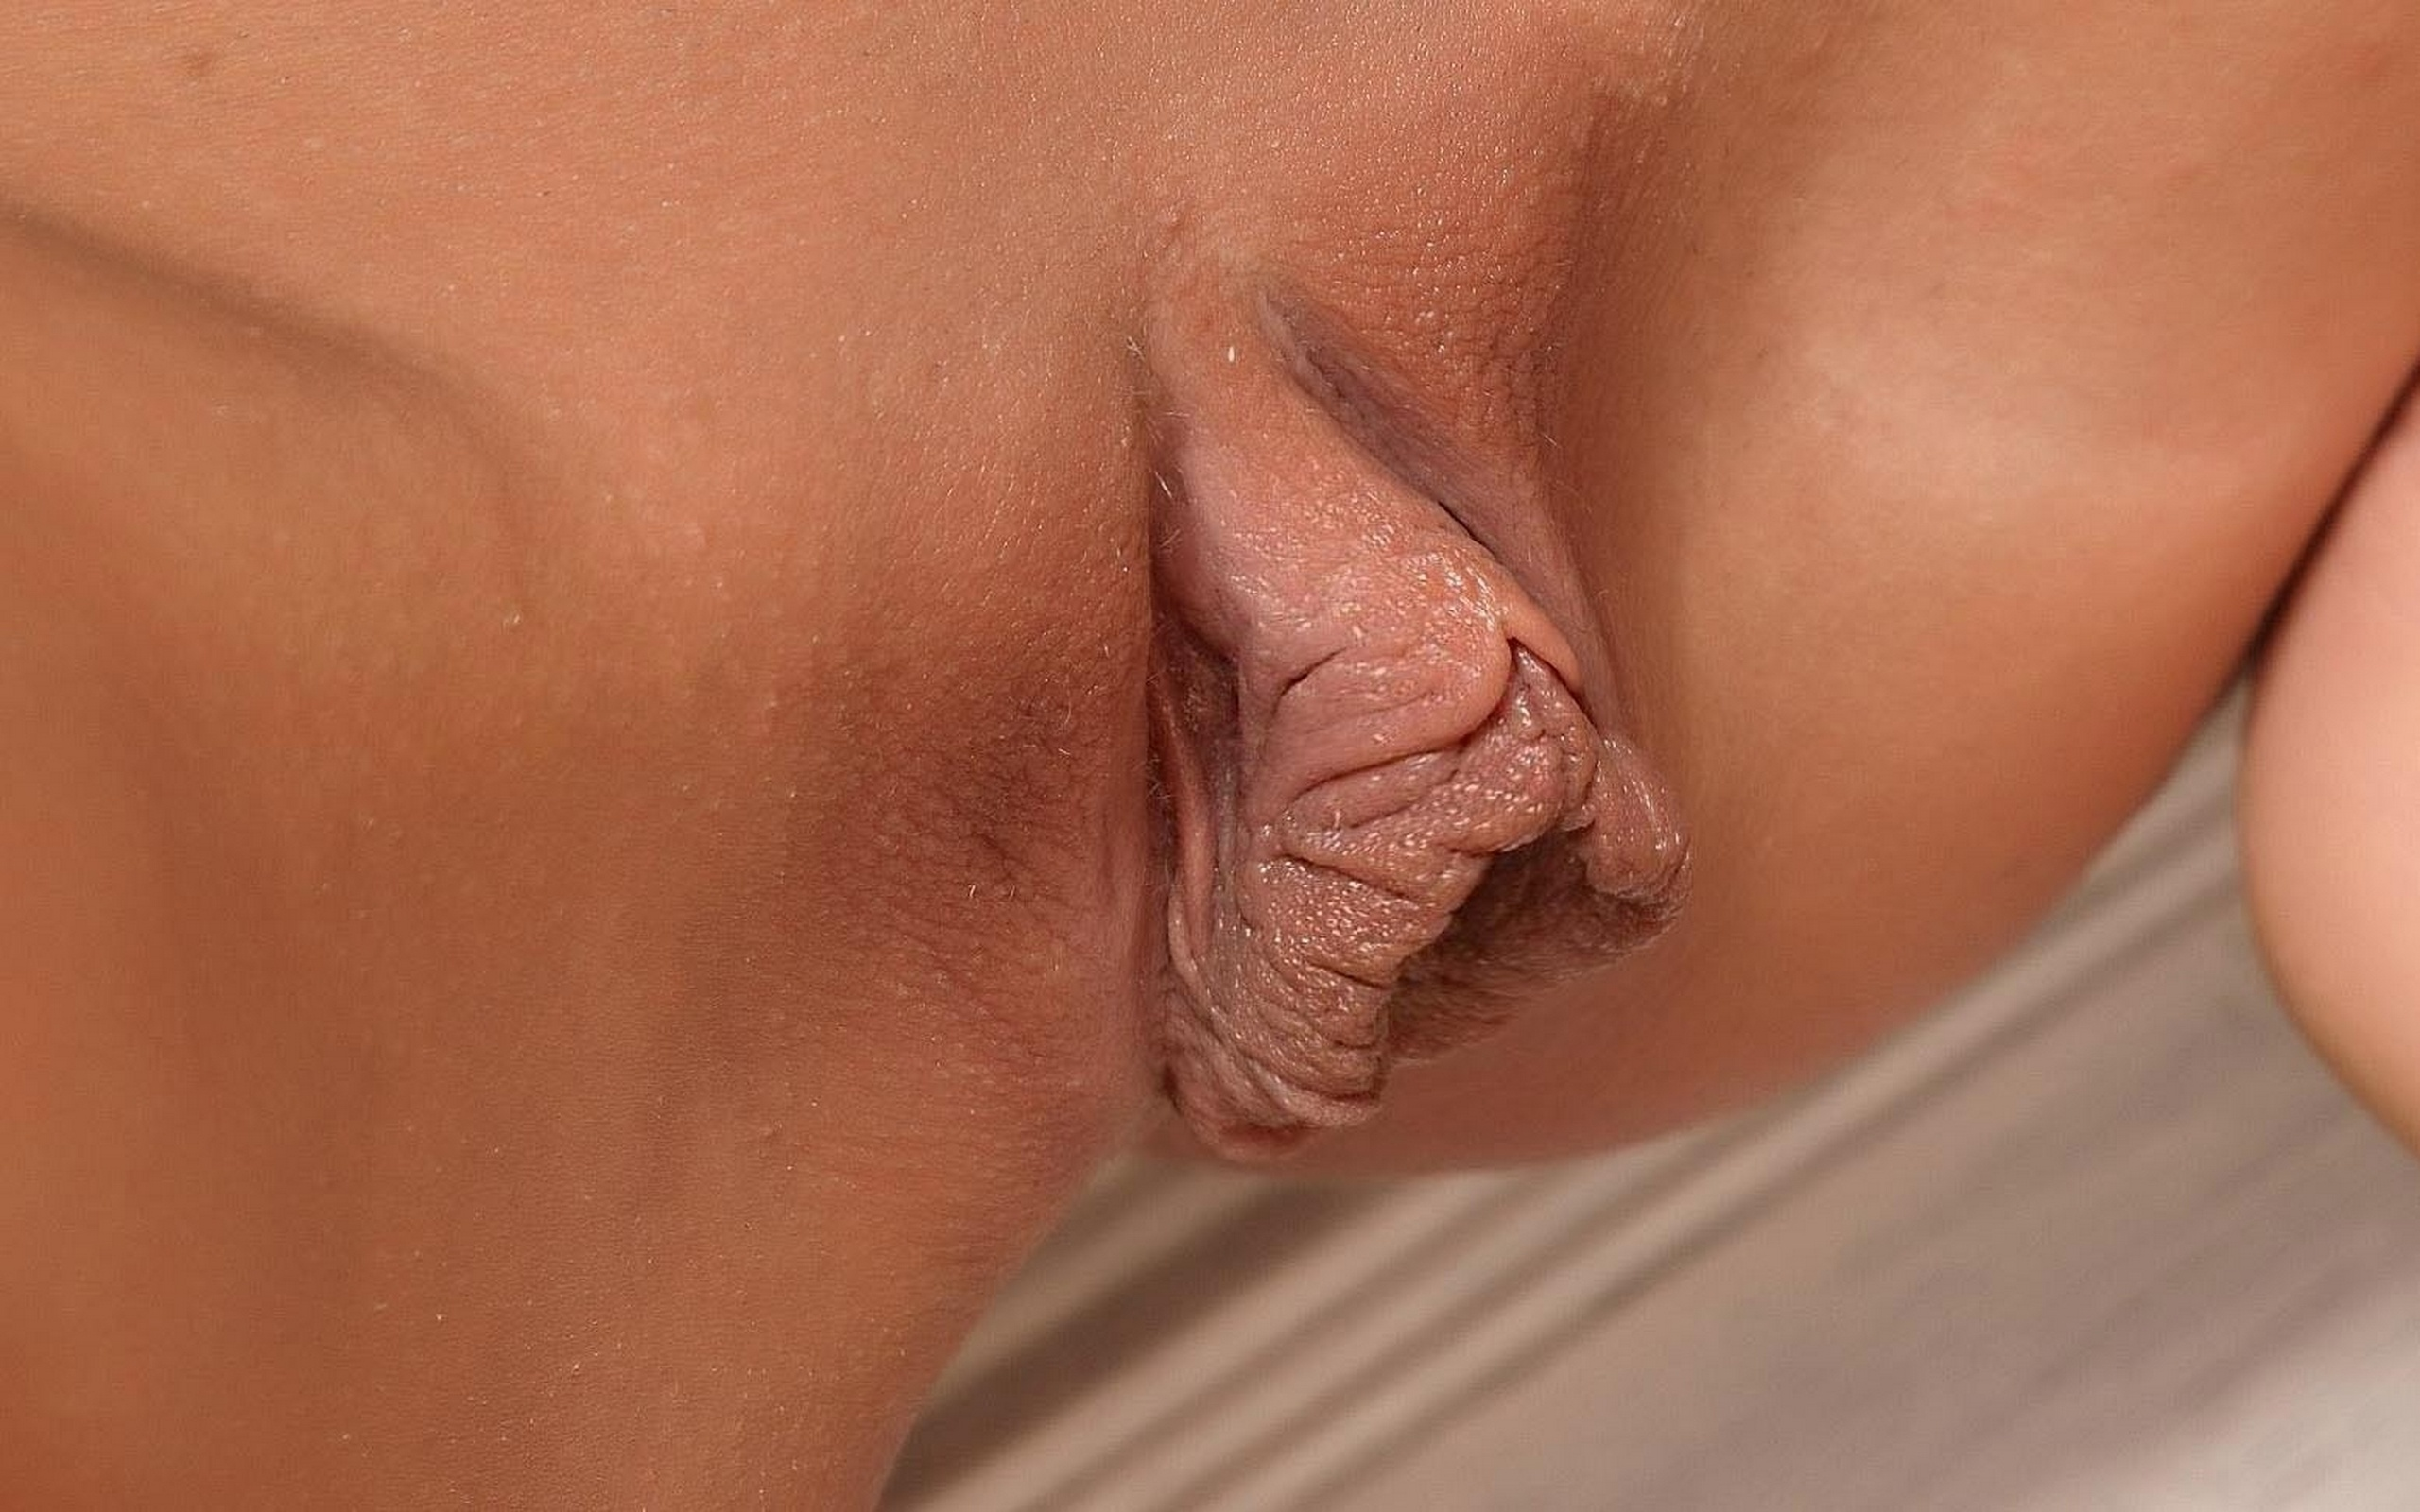 Perfect pussy lips close up